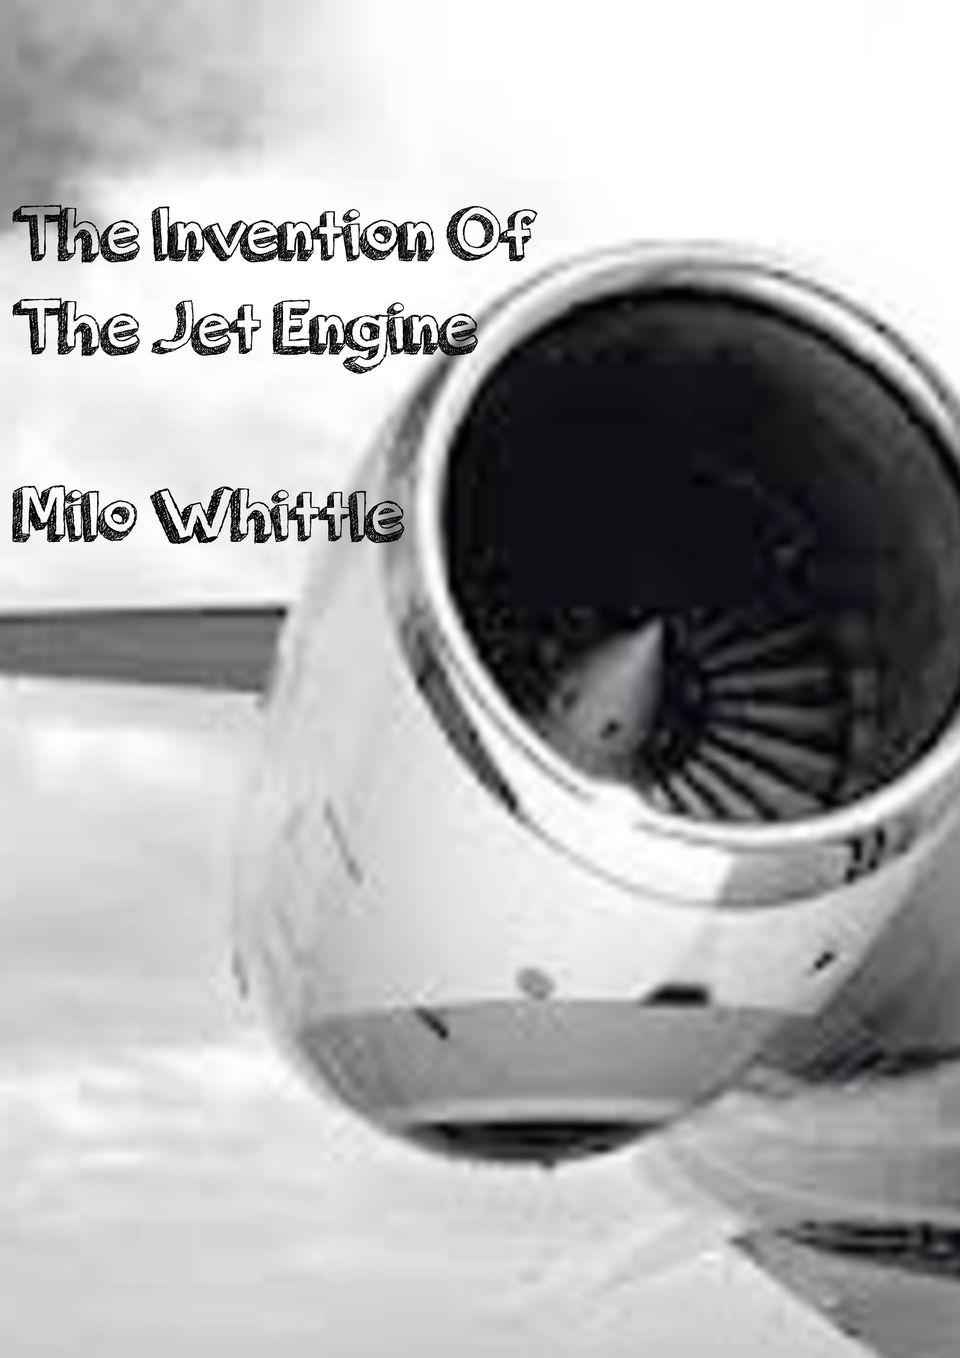 The Invention Of The Jet Engine  Milo Whittle - PDF